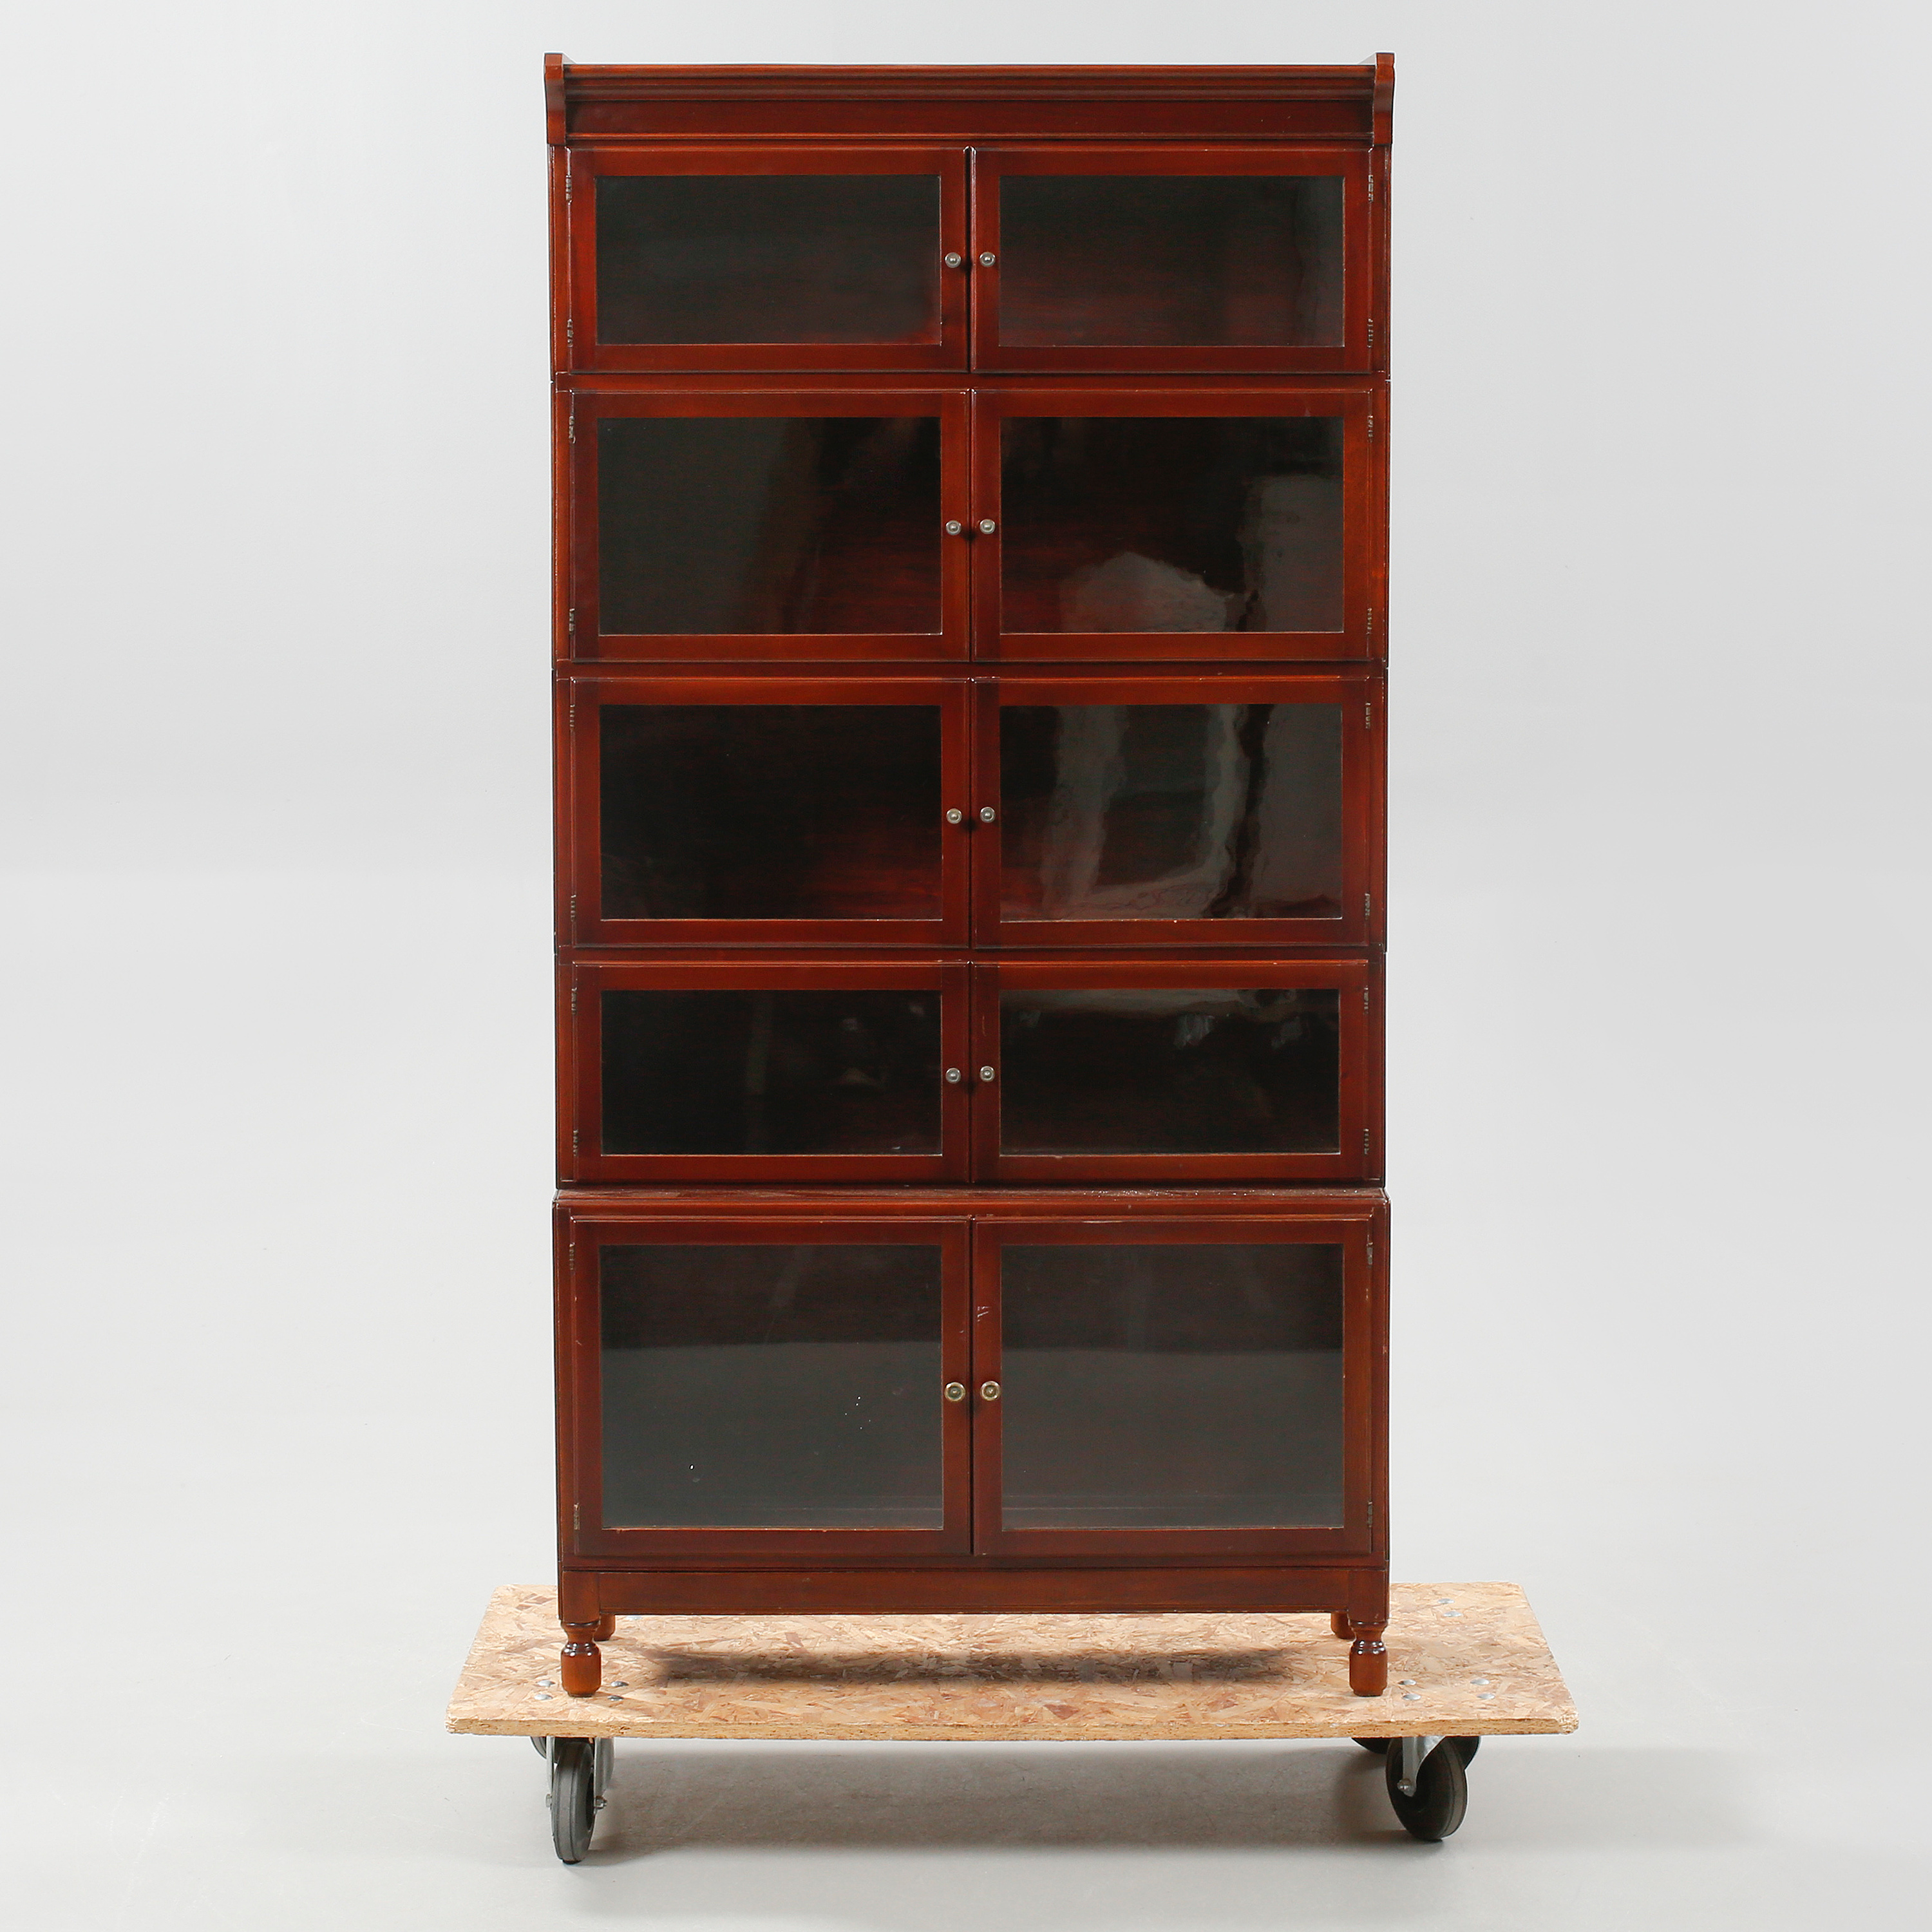 A Barrister Bookcase In Globe Wernicke Style Made Minty